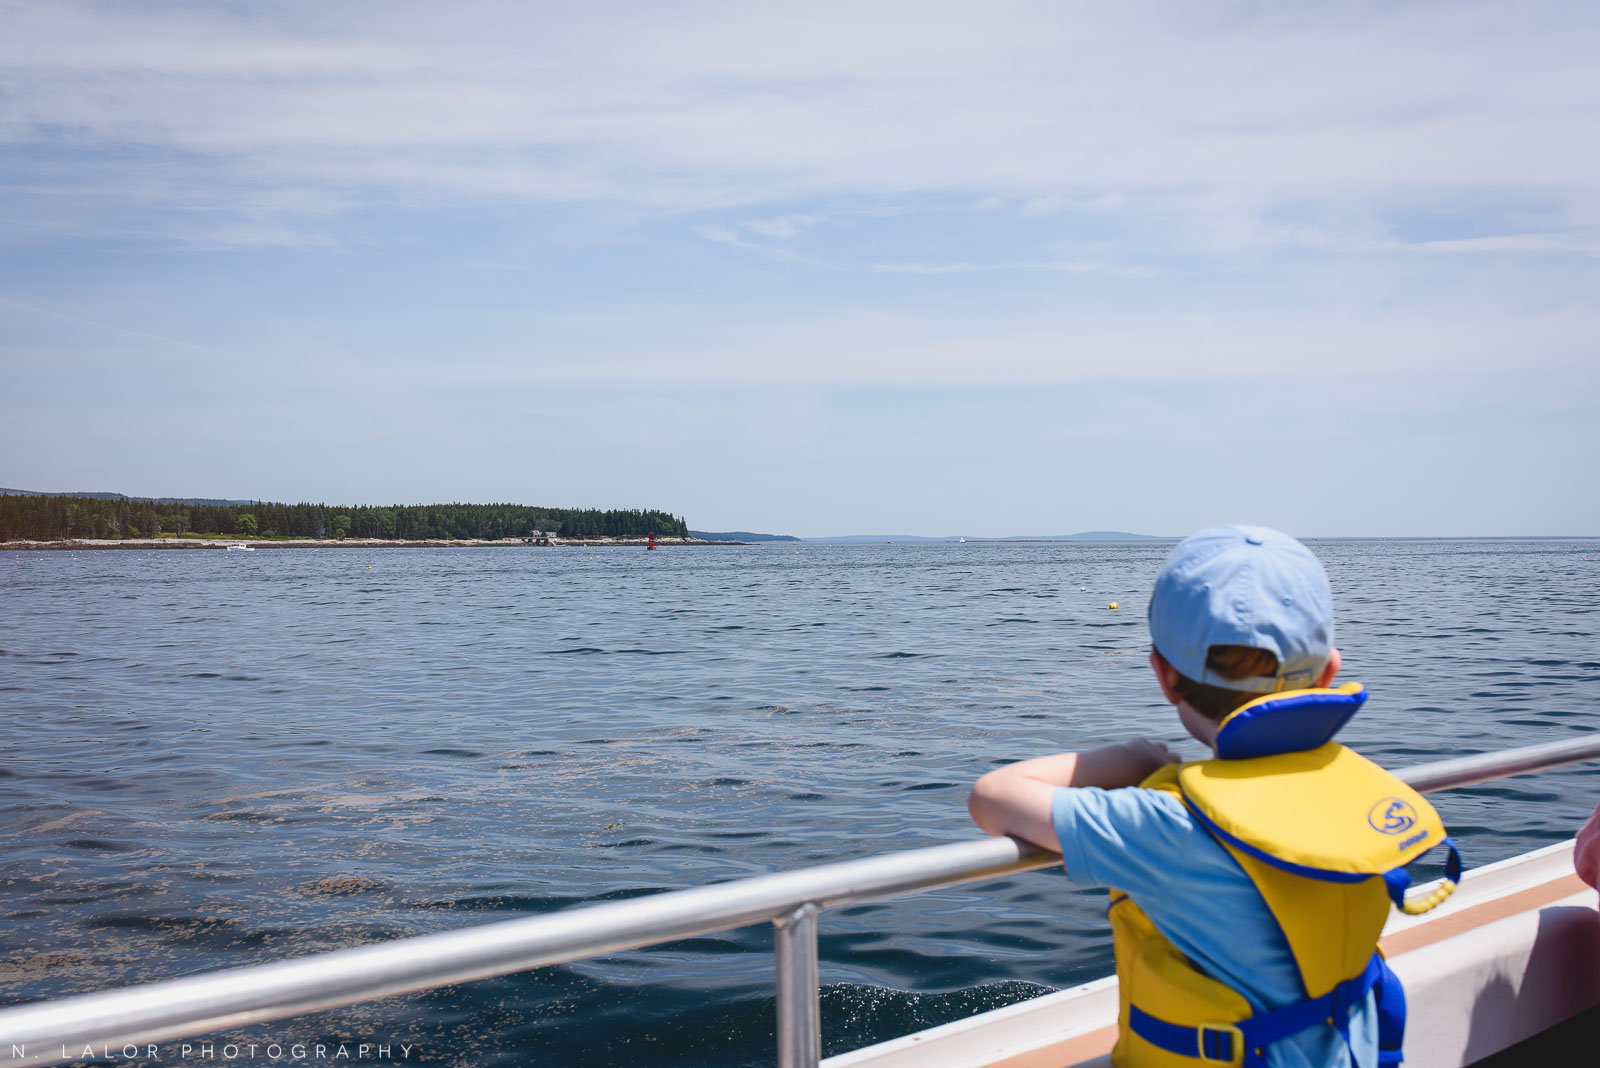 Looking for buoys during a boat rid. Acadia National Park in Bar Harbor Maine. Photo by N Lalor Photography.